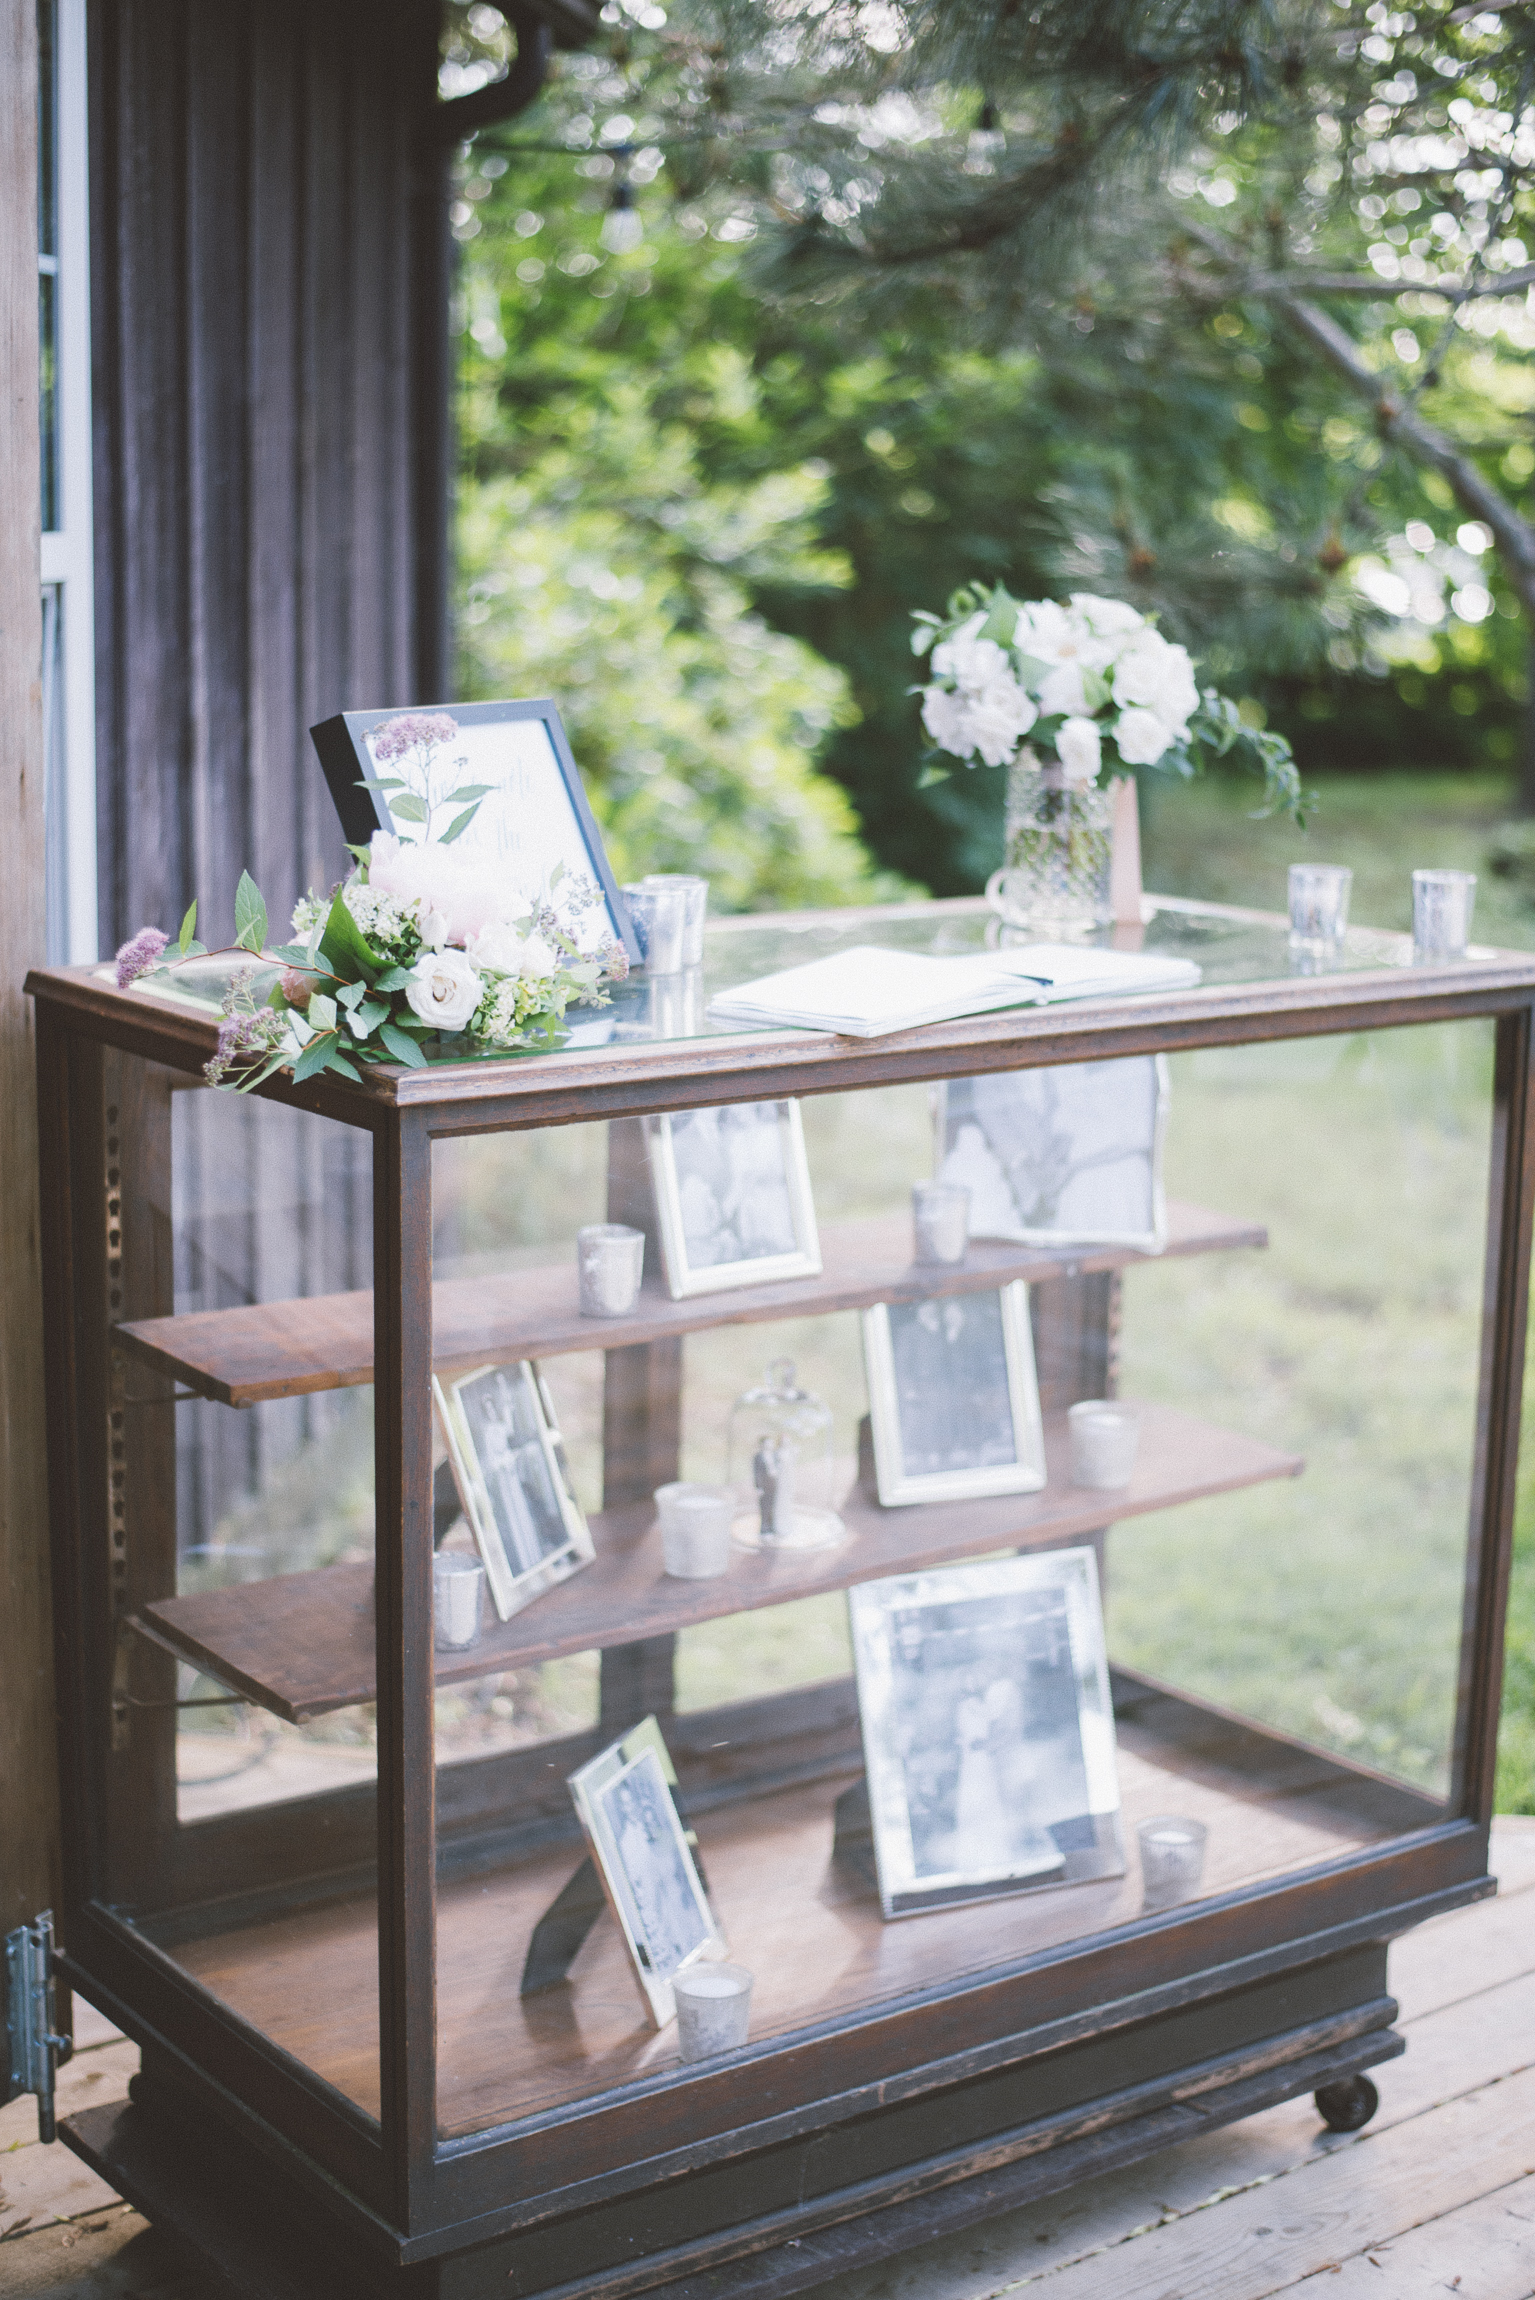 amanda cowley events niagara wedding planner kurtz orchard gracewood estate blush bridesmaids mix and match peony bouquets family photos memory frames apothecary chest display antique